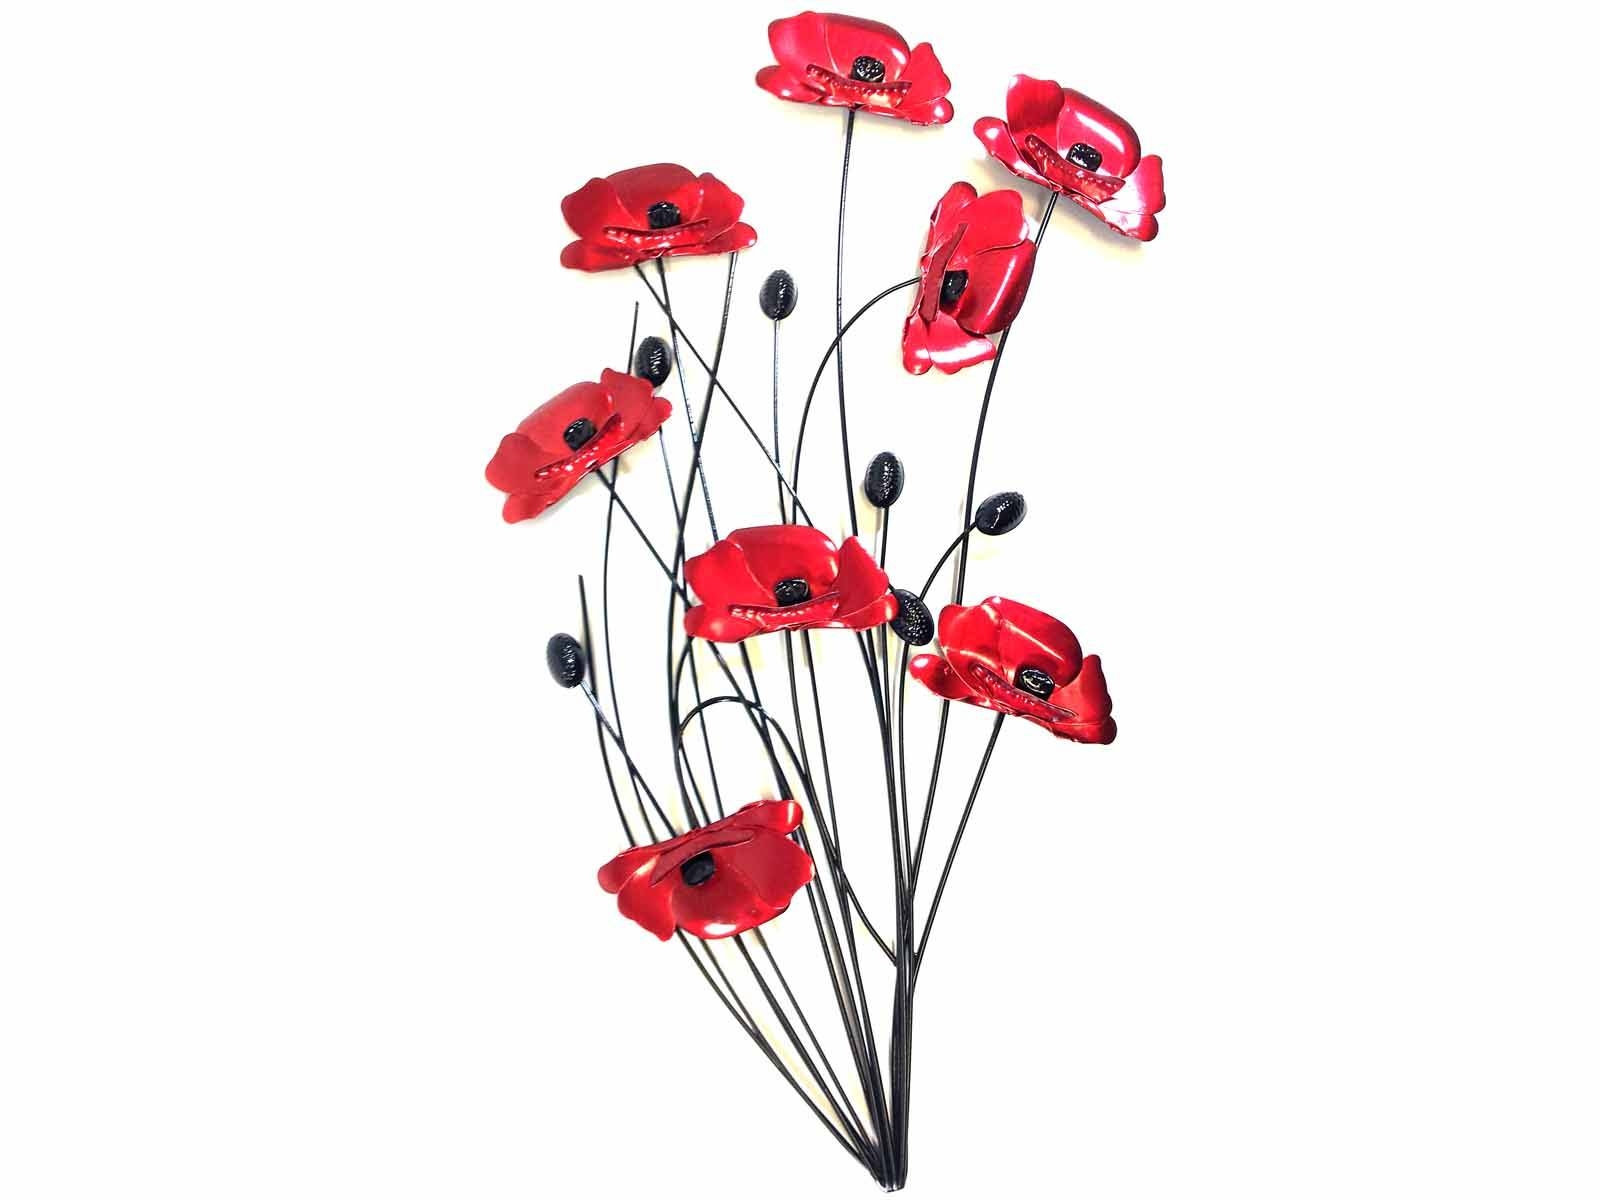 Metal Wall Art – Poppy Flower Bunch Black Stems With Most Recent Red And Black Metal Wall Art (View 13 of 20)